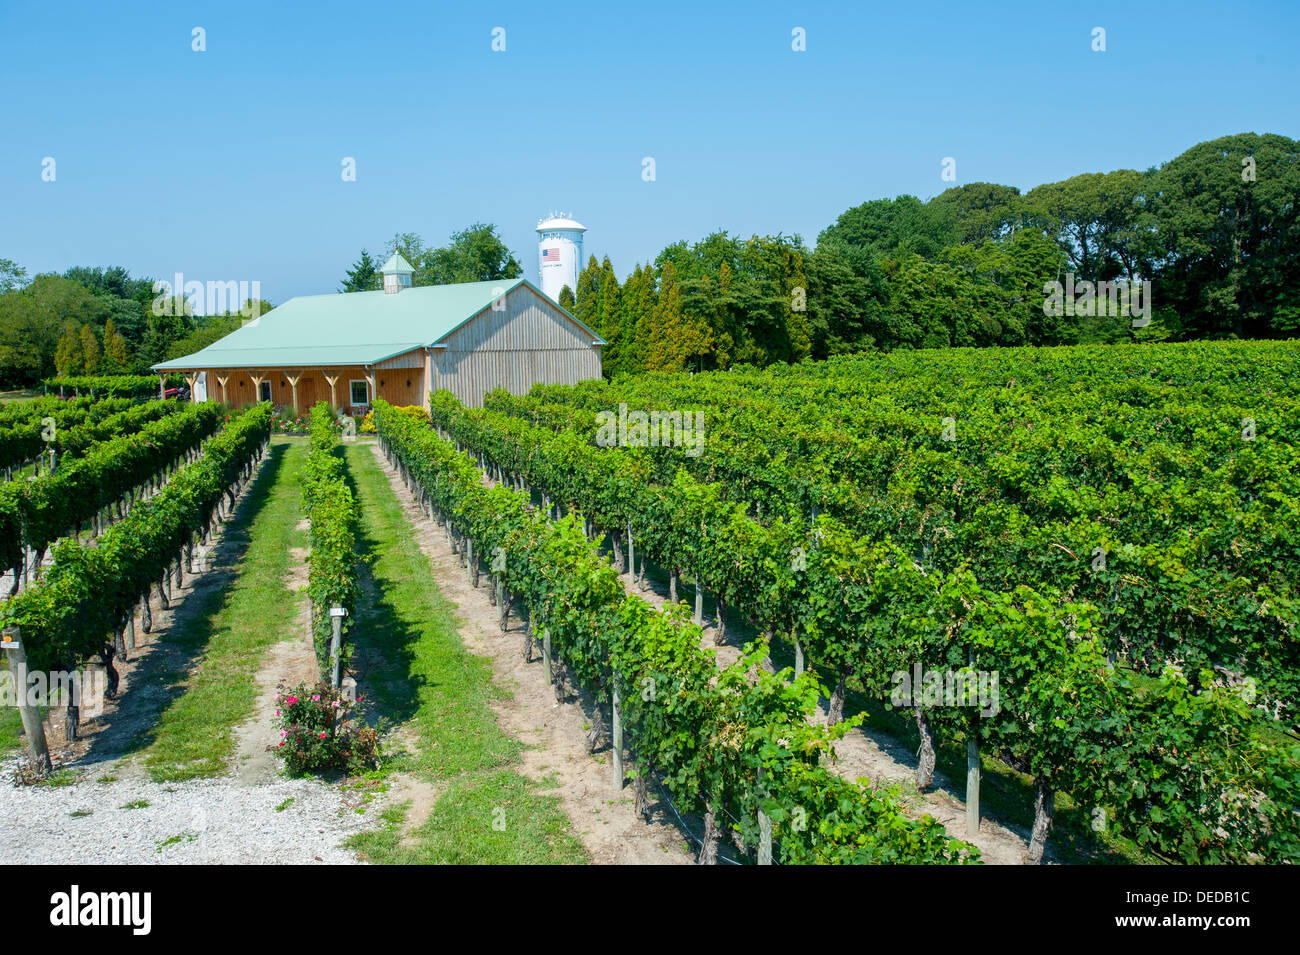 usa-new-jersey-nj-cape-may-winery-and-vineyards-on-the-southern-jersey-DEDB1C.jpg